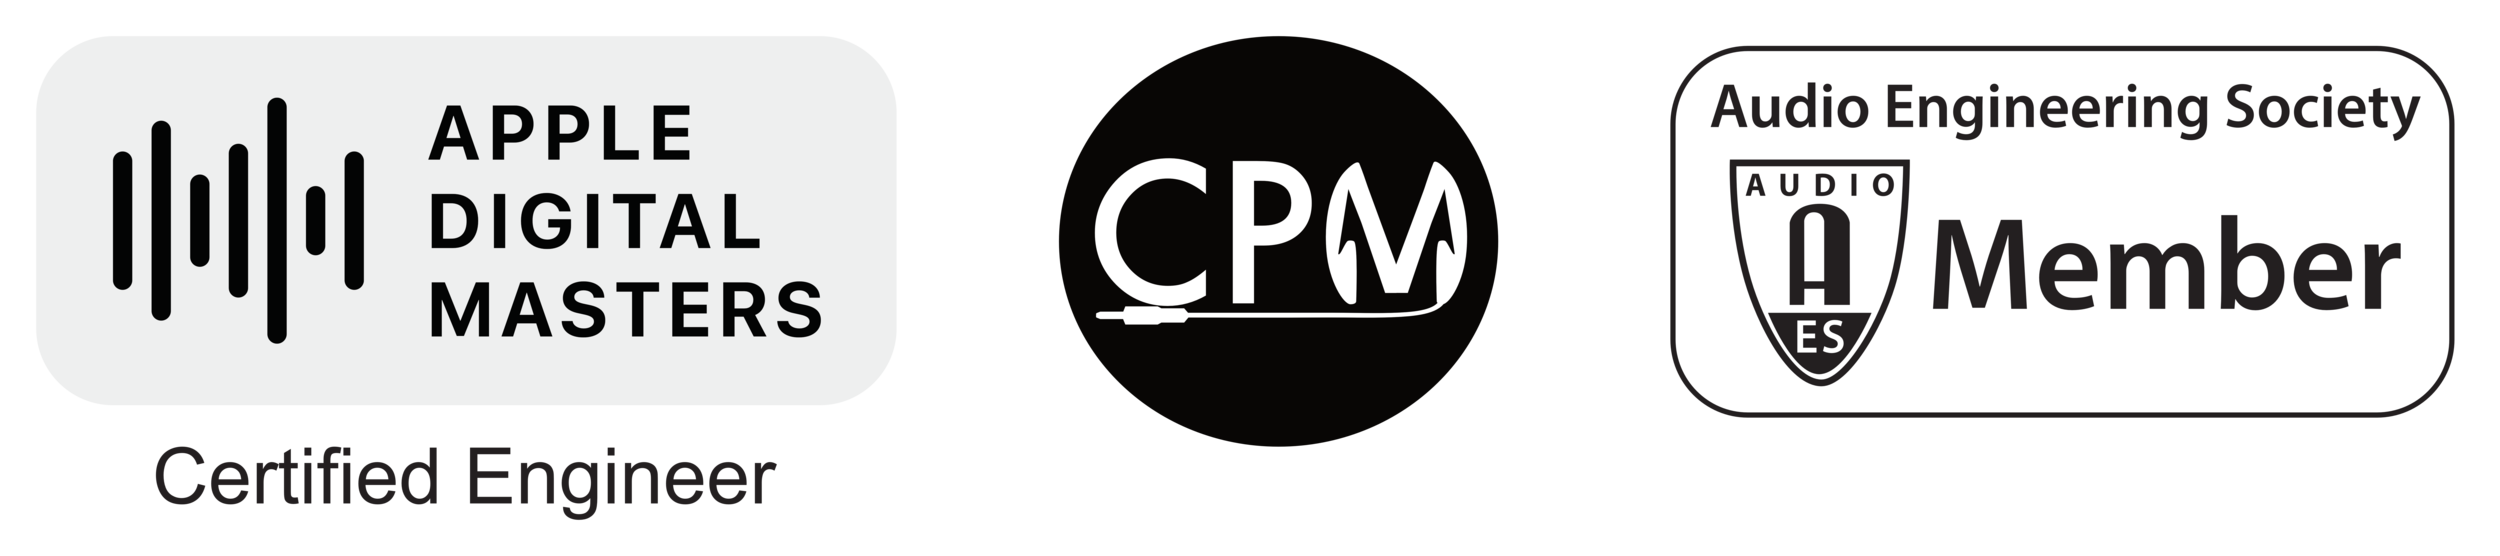 CPM Logo2019FooterReverse.png